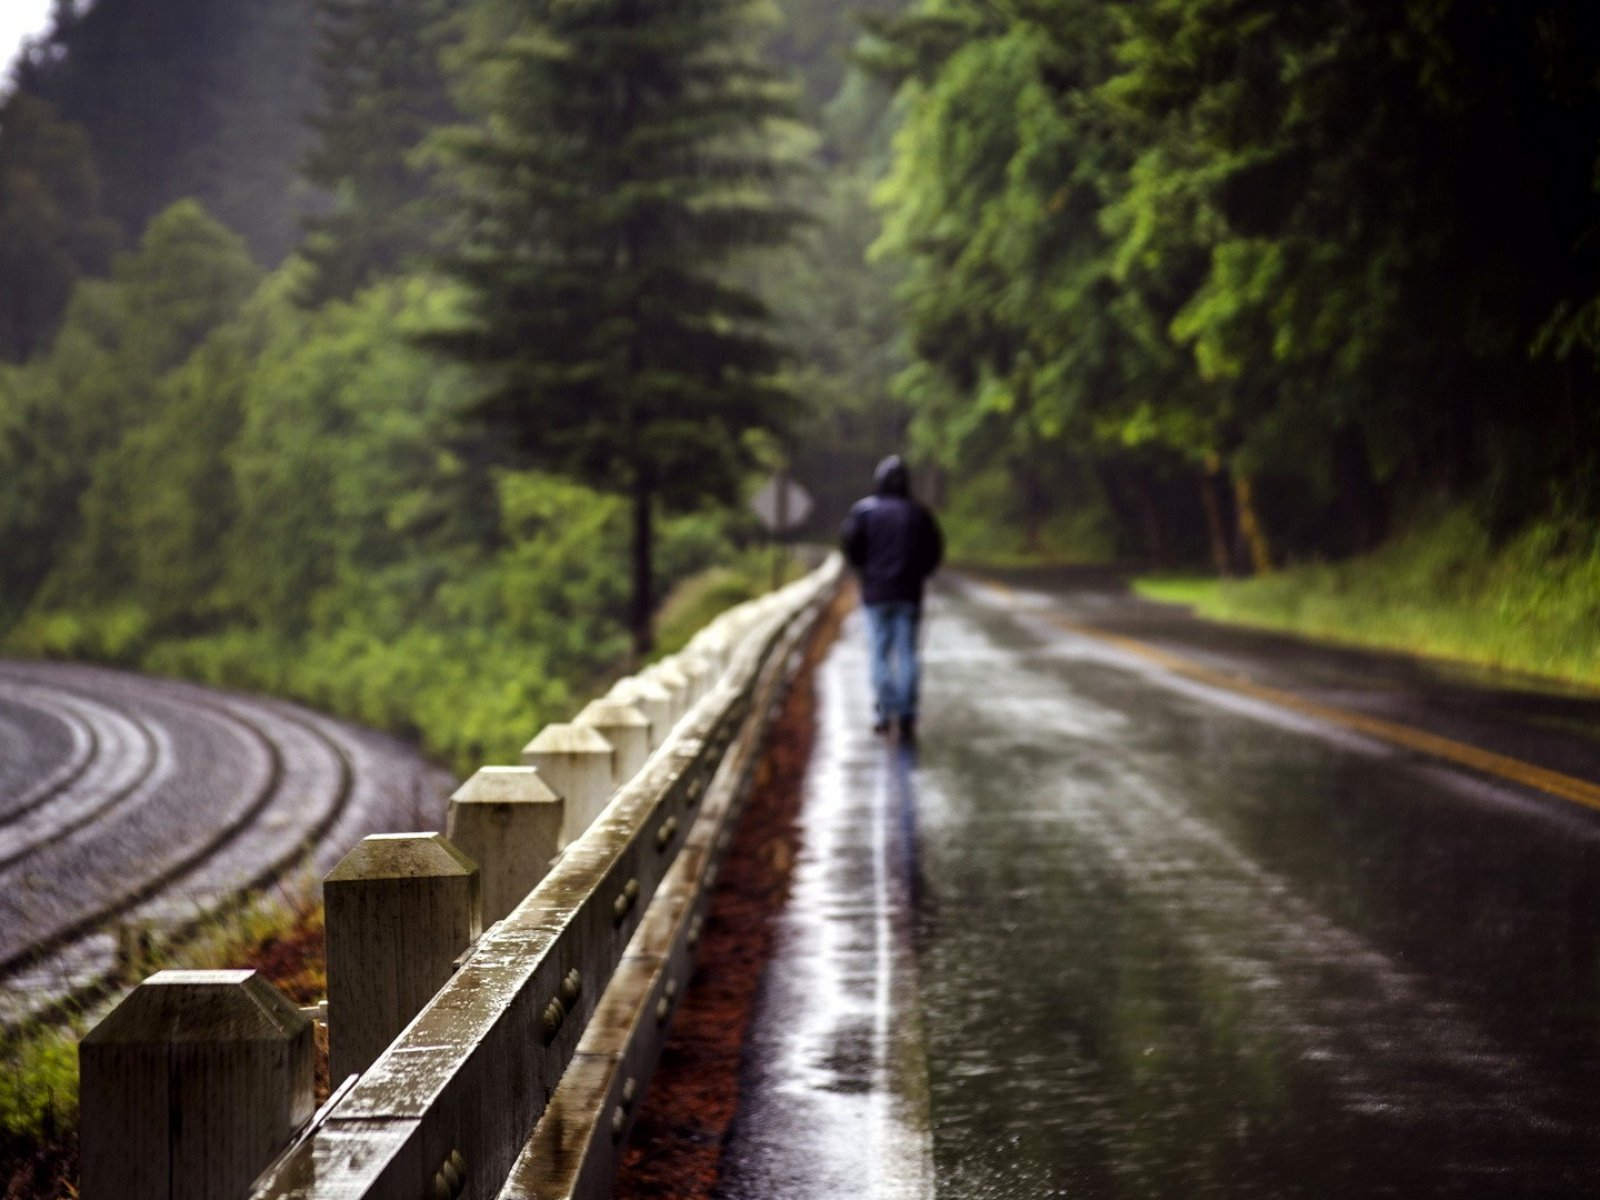 Alone Girl Wallpaper In Rain Man Walking Path Natural Beauty Of The Rain Forest